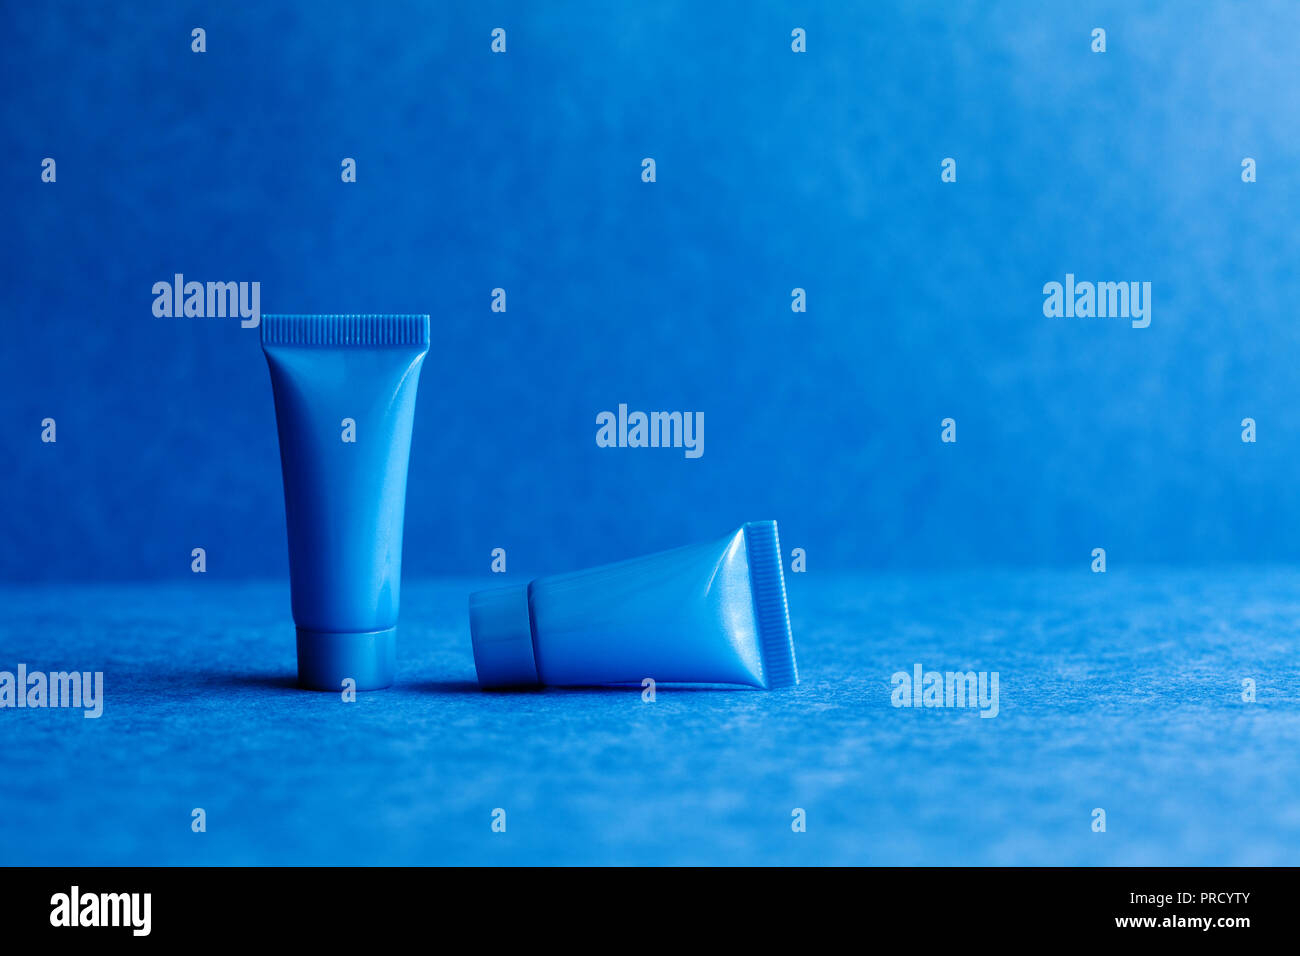 Blue cosmetic tubes on blue background. Blank opened plastic container, simple packaging design template. shallow depth of field, copy space photography. - Stock Image